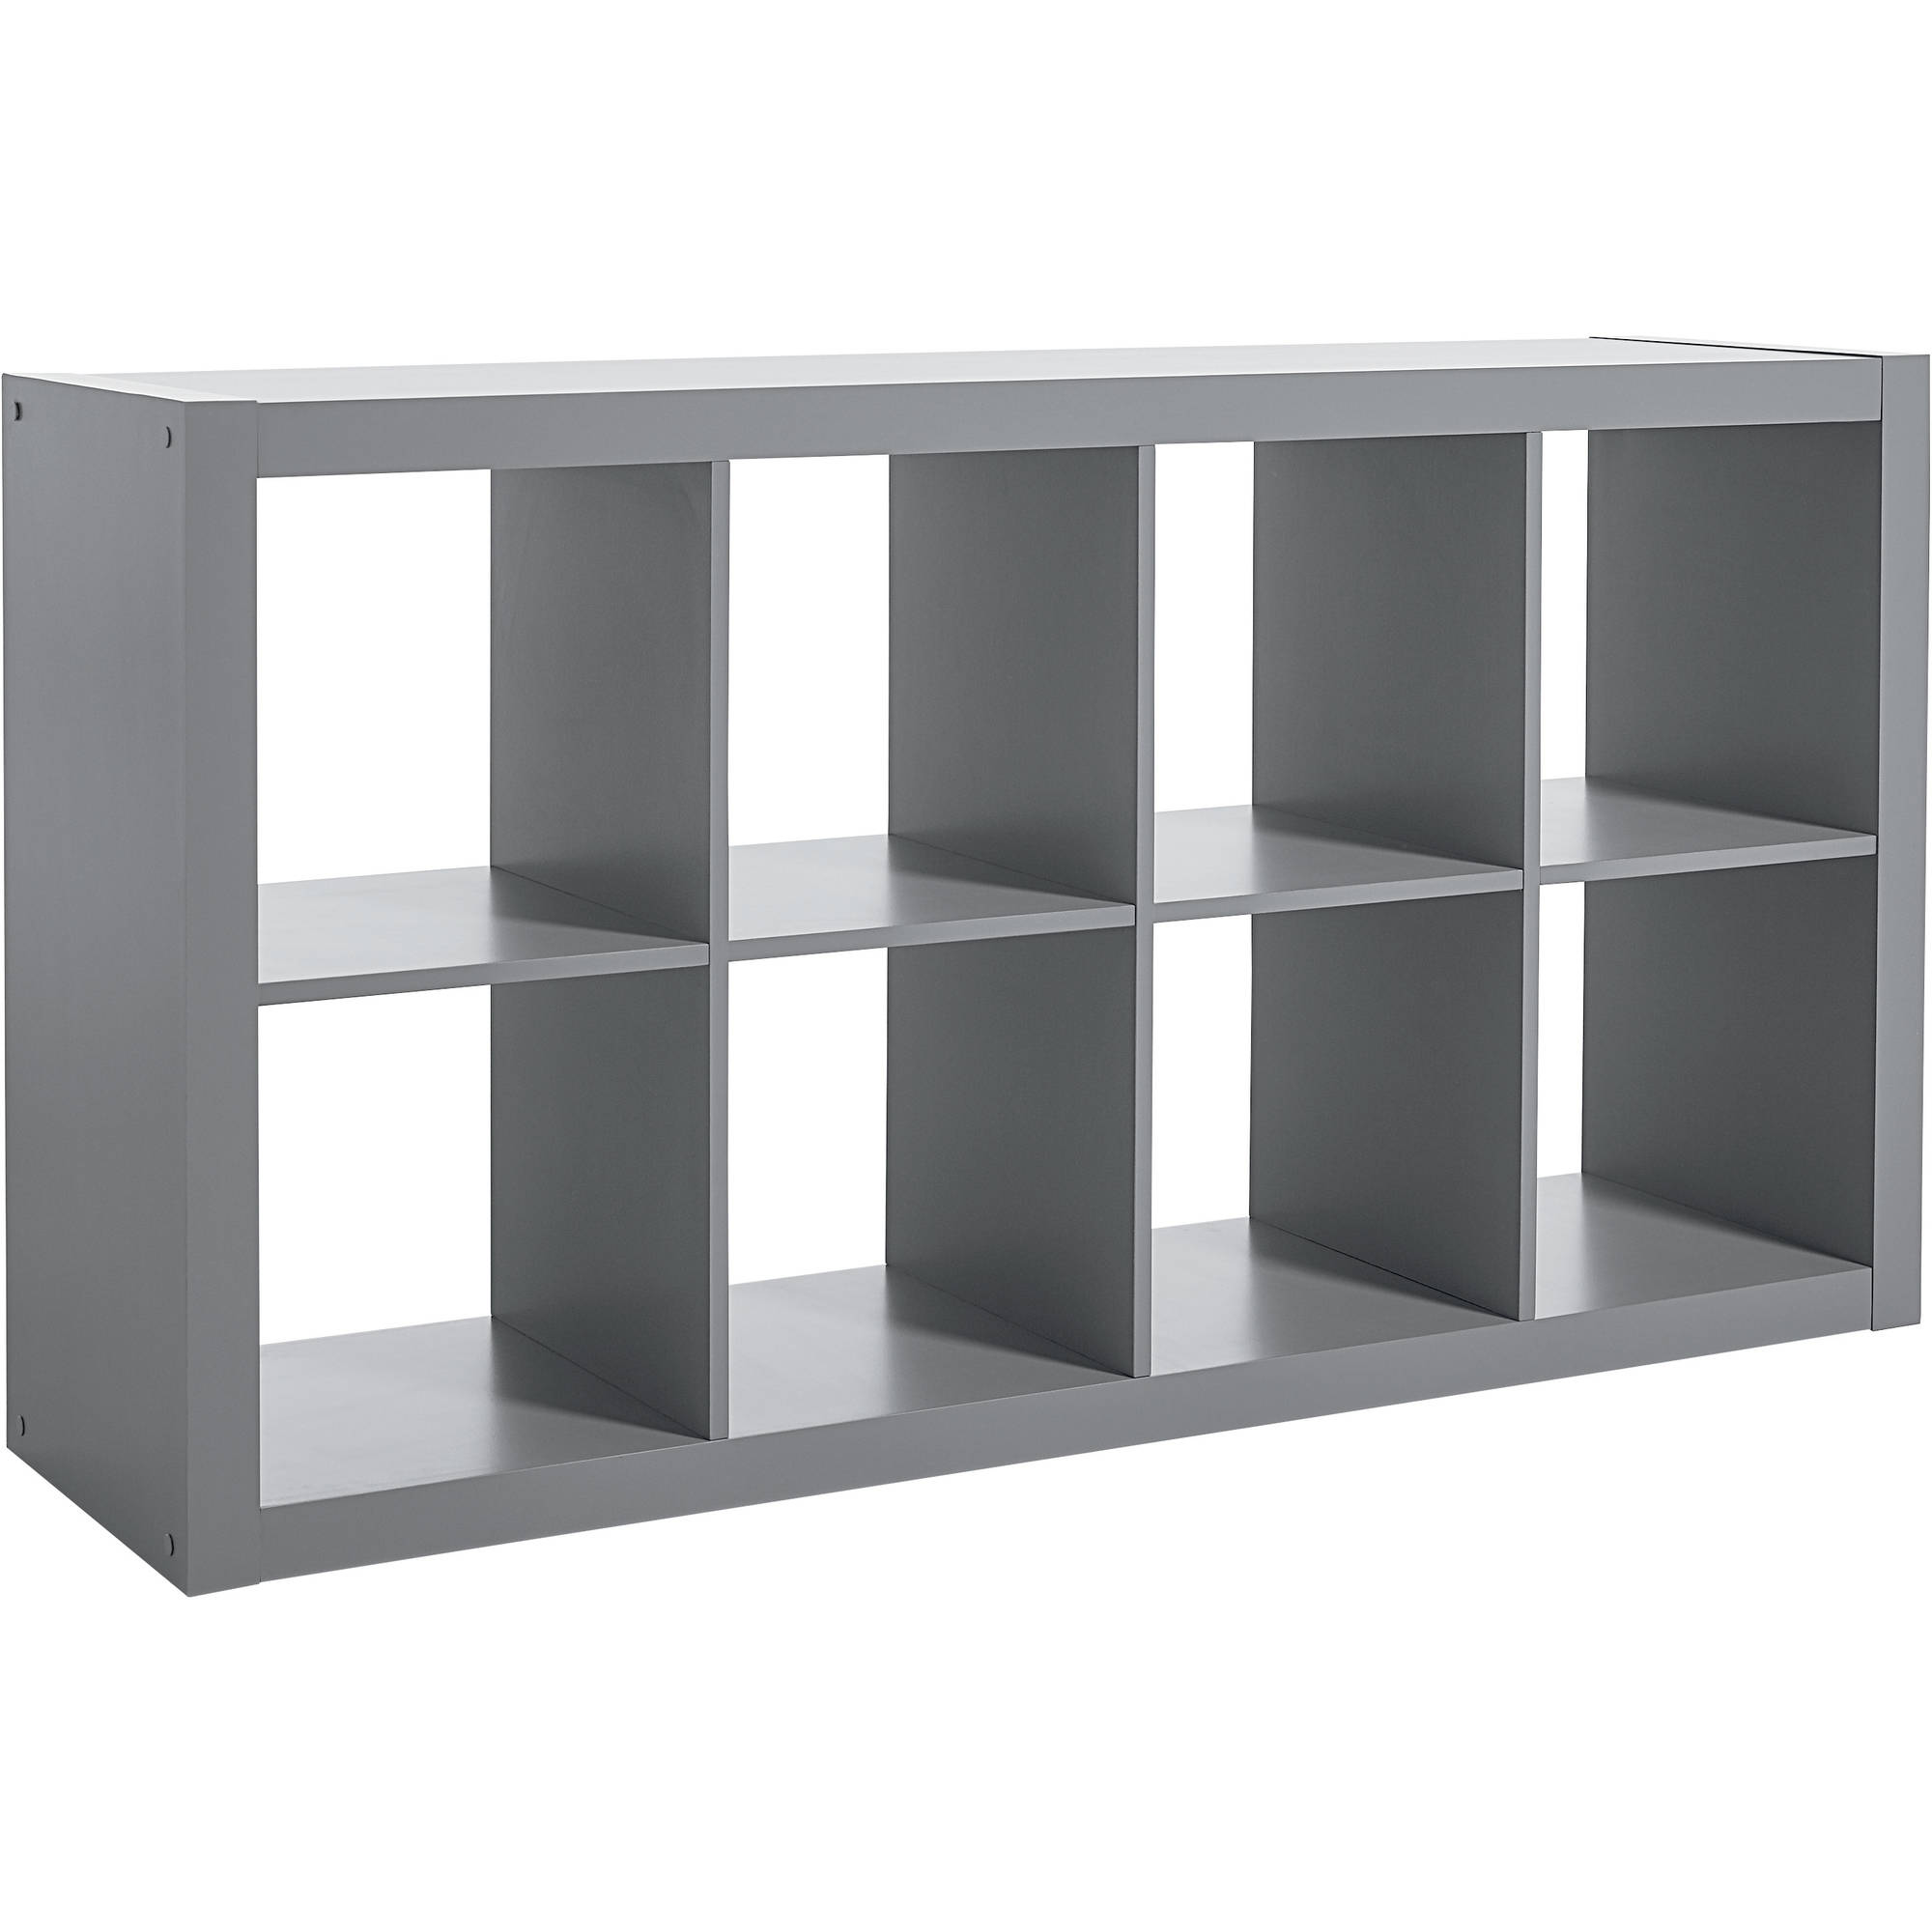 trading cube unit storage products cubes eight with great co shelf four abbeville little white